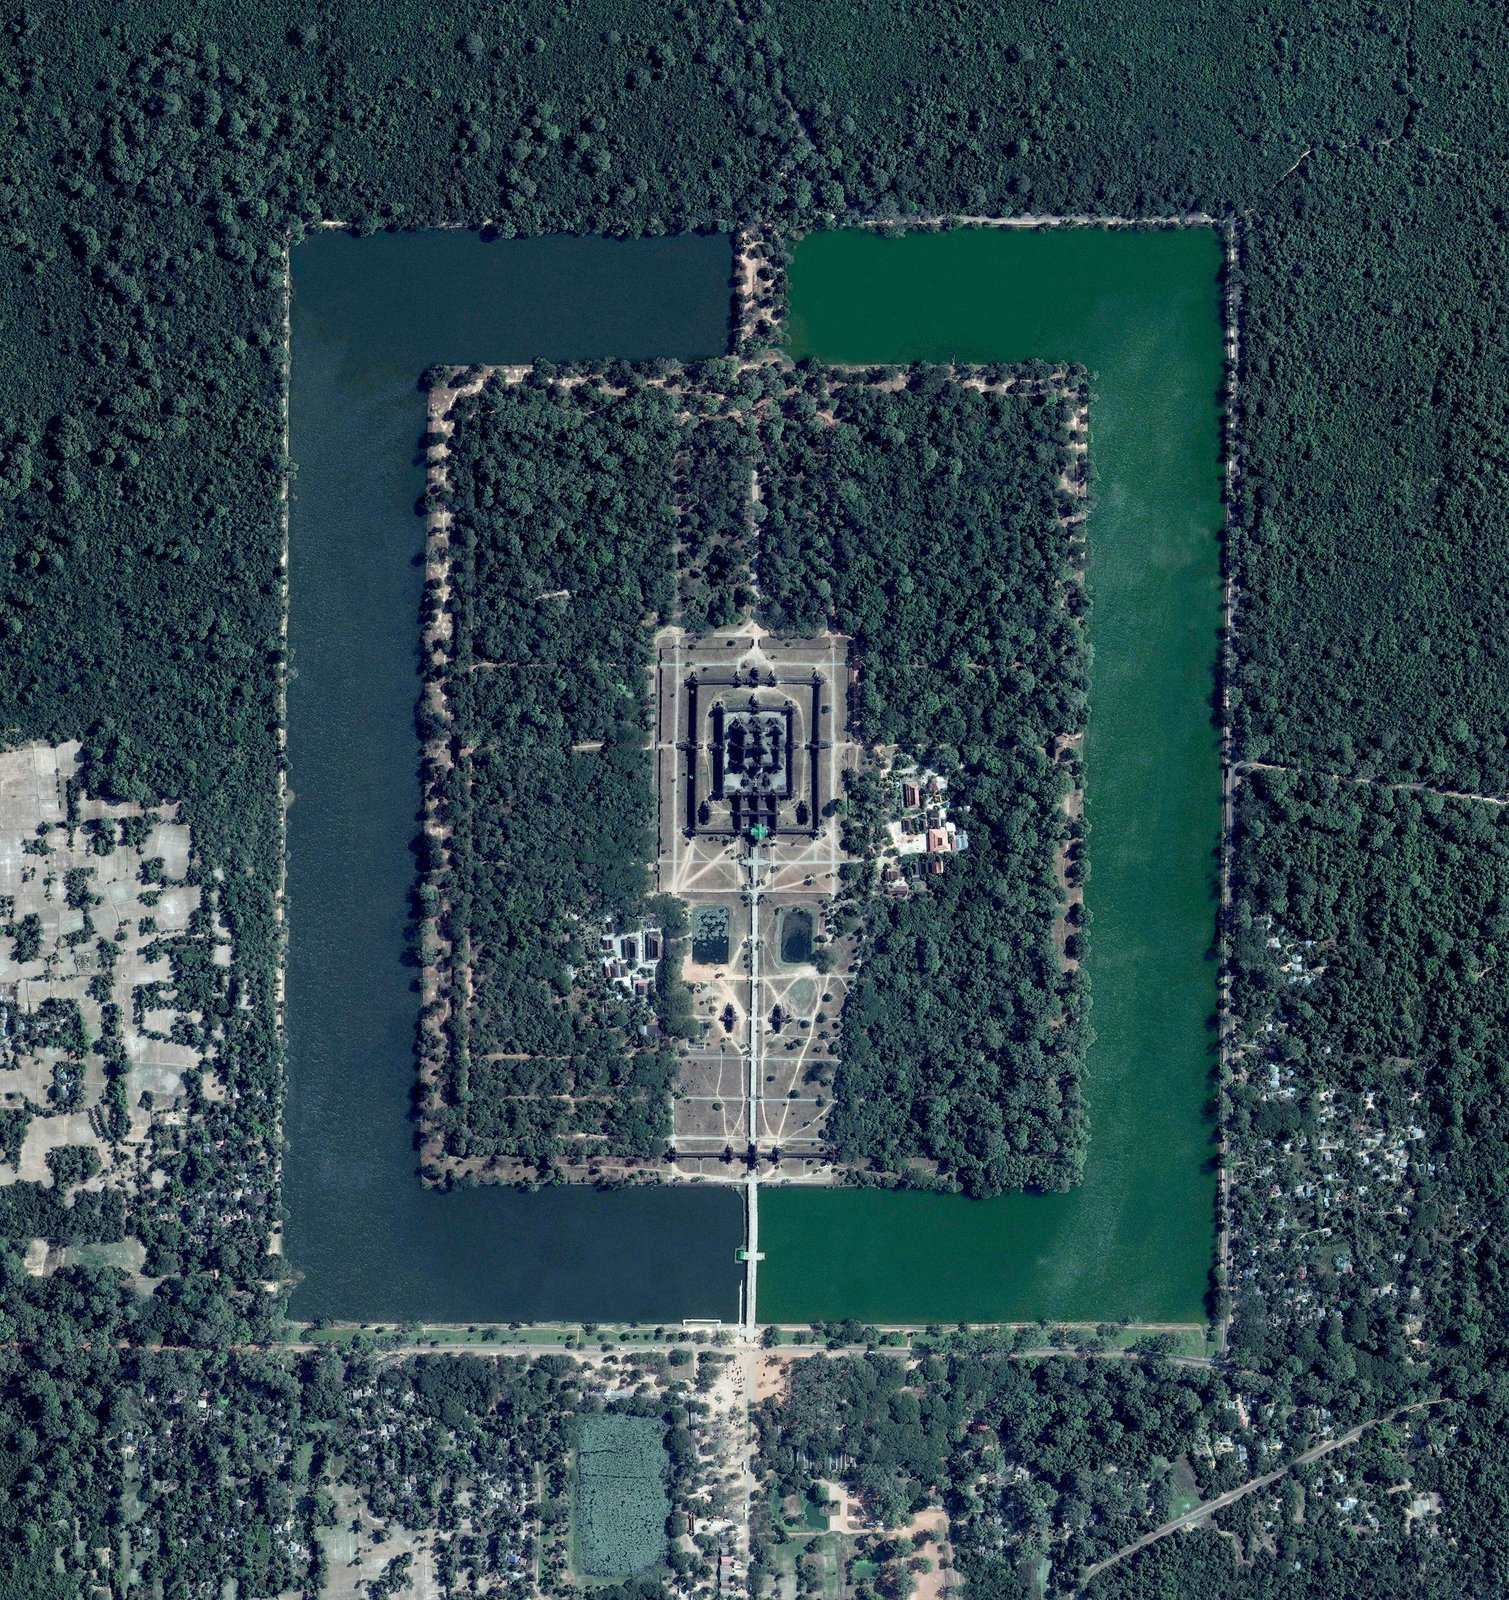 Cambodia's famous landmark, the Angkor Wat temple complex, constructed in the 12th century, is the largest religious monument in the world, surrounded by a moat and a forest. Reprinted with permission from Overview by Benjamin Grant, copyright (c) 2016. Published by Amphoto Books, a division of Penguin Random House, Inc.   Images (c) 2016 by DigitalGlobe, Inc.